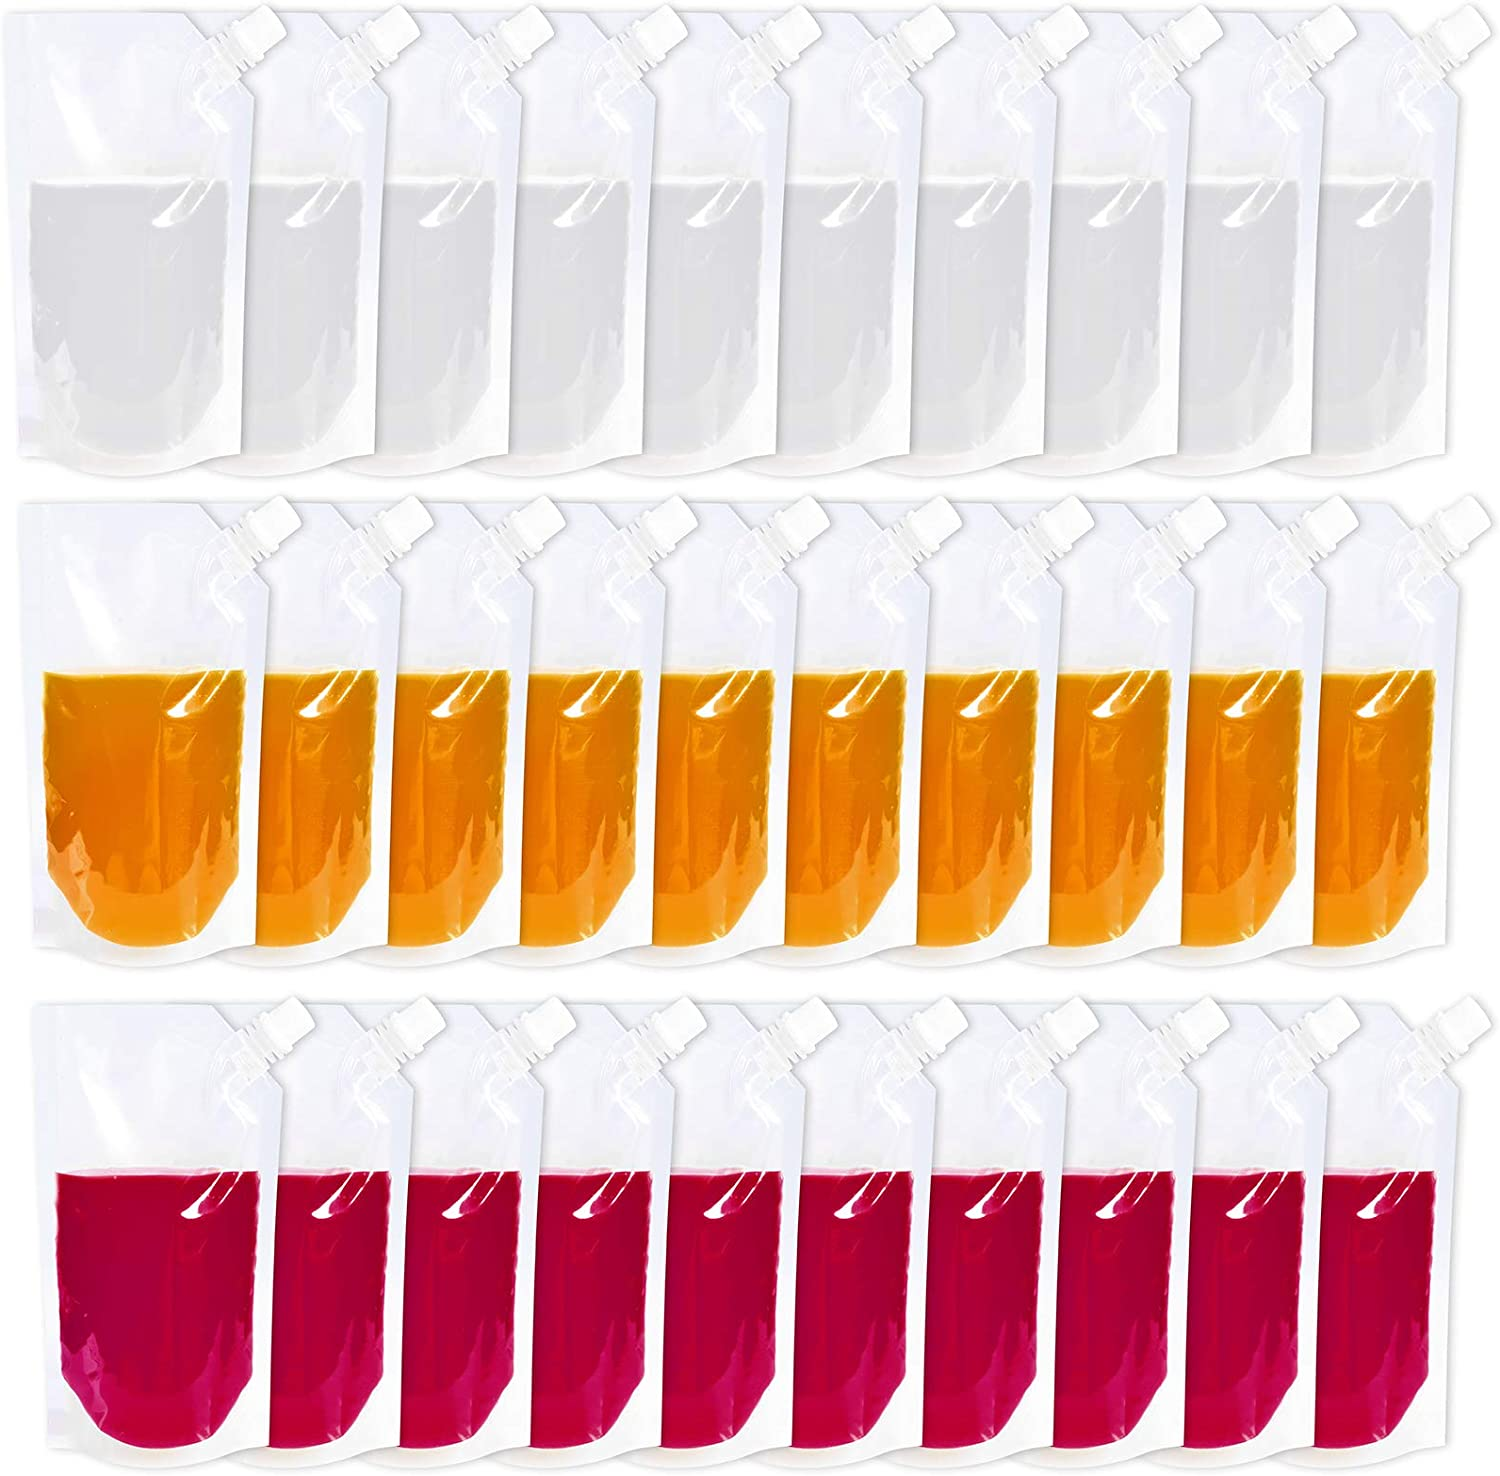 30 Pcs Drink Pouches for Adults & Kids, Plastic Drink Bags with Funnel, Reusable Liquor Bag Concealable Alcohol Flask for Cold & Hot Drinks(17oz)